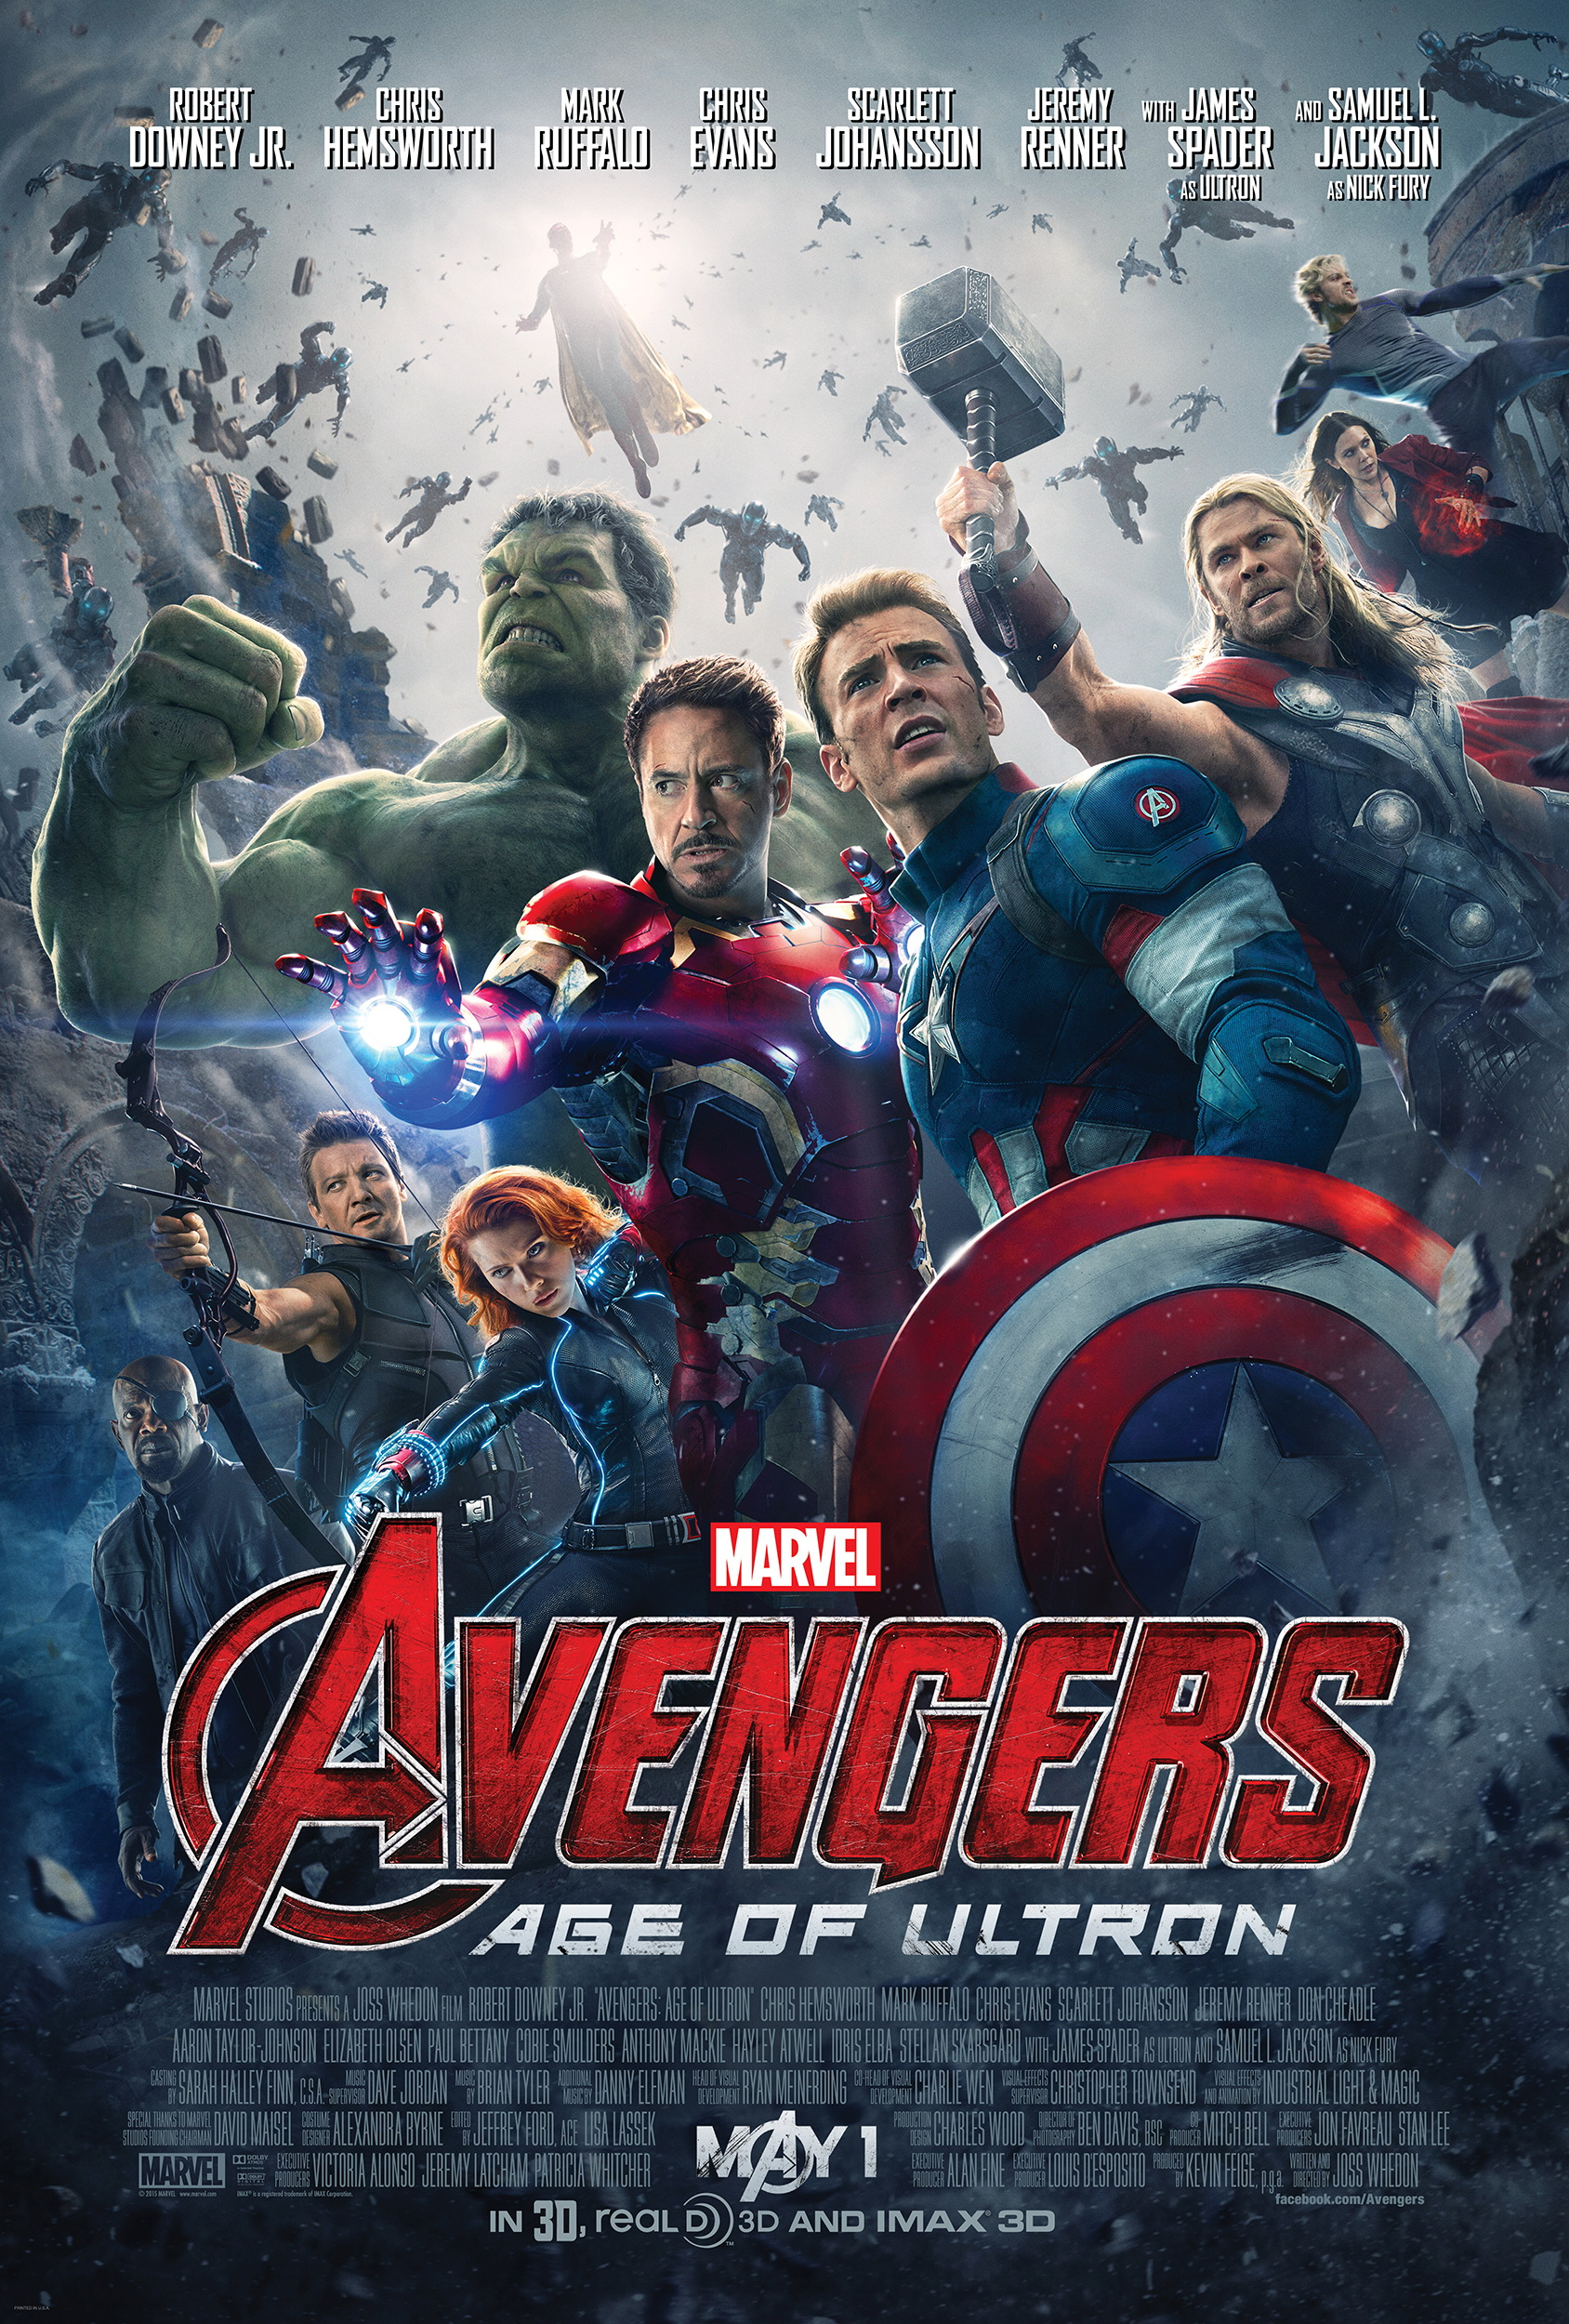 'Avengers: Age of Ultron' (2015) theatrical poster